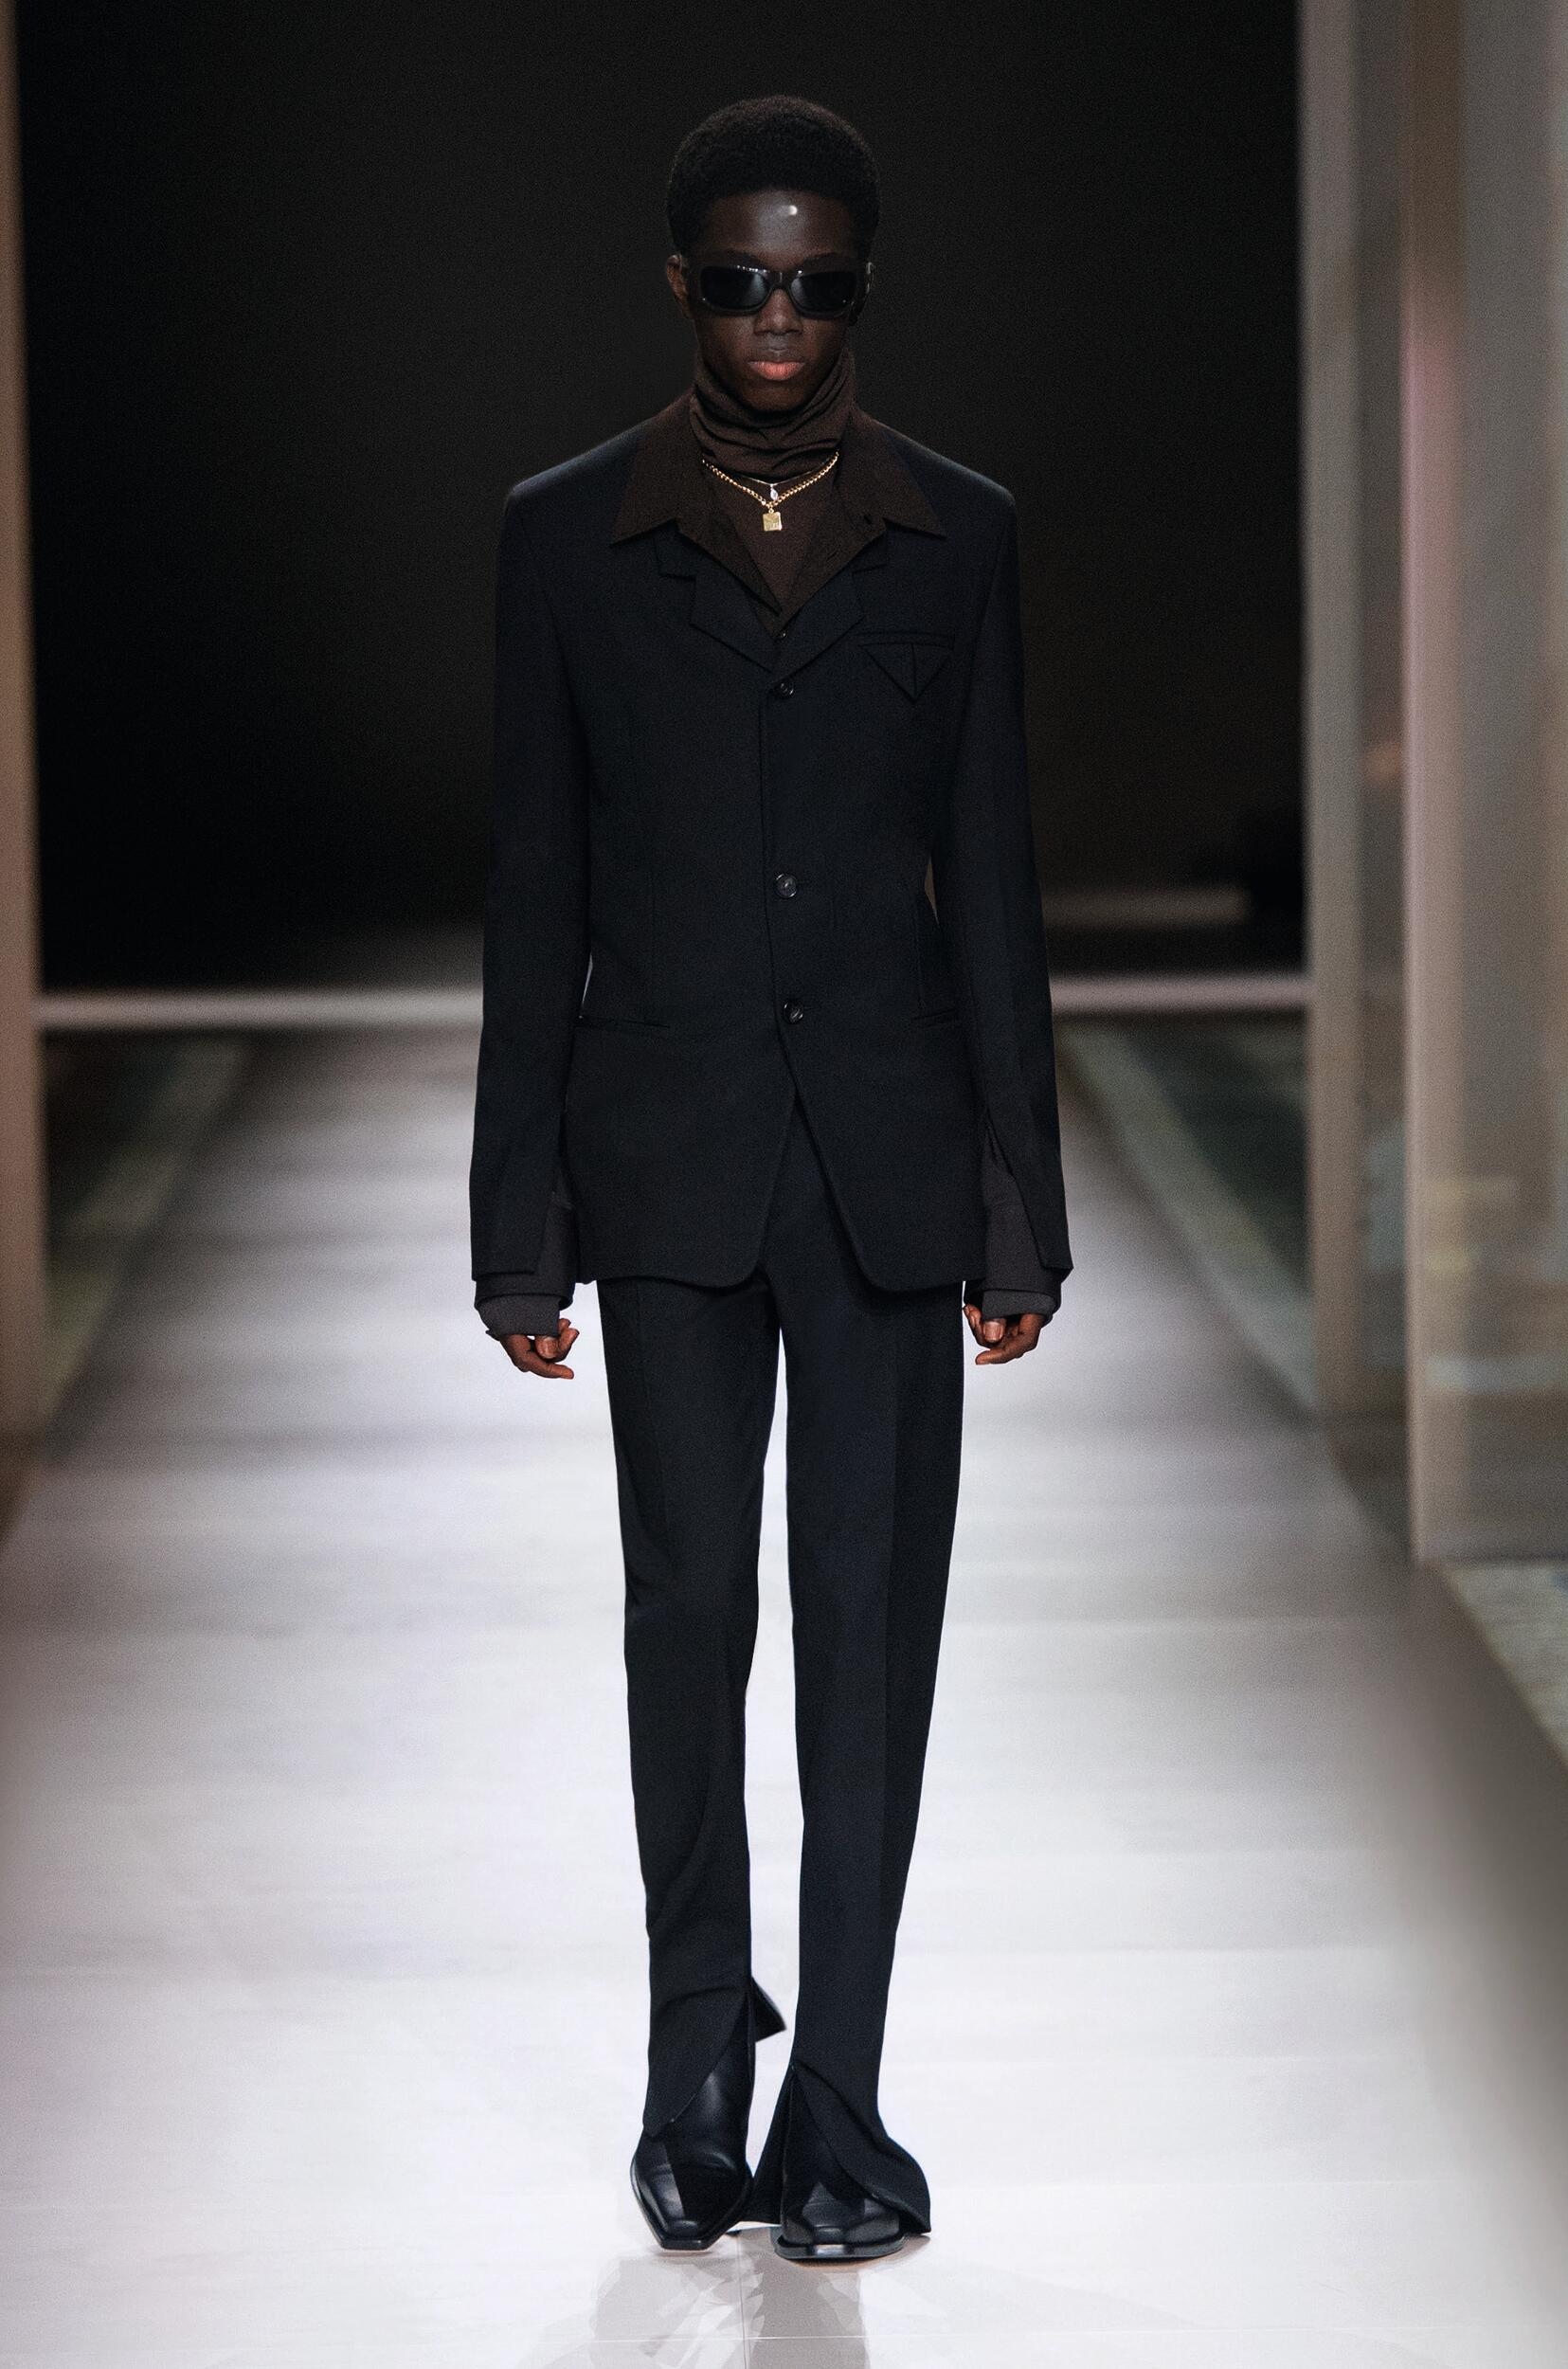 FW 2020-21 Bottega Veneta Fashion Show